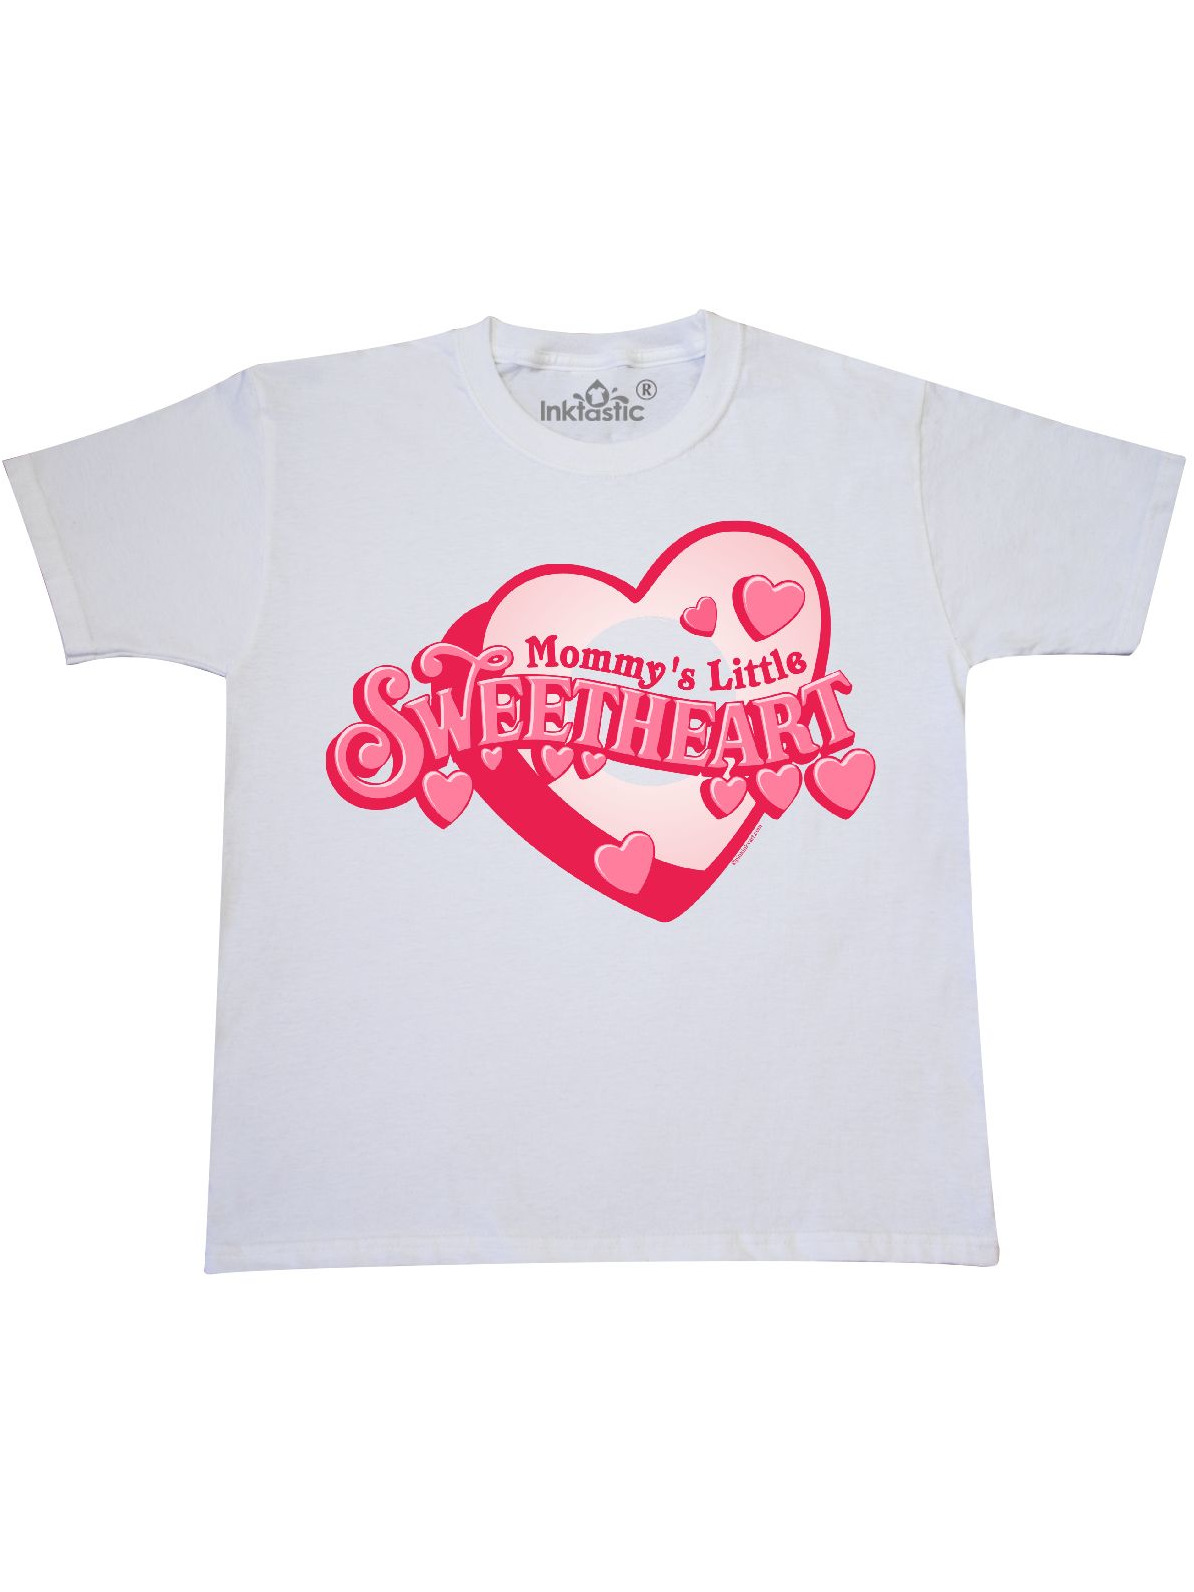 inktastic Mommys Sweetheart Toddler T-Shirt